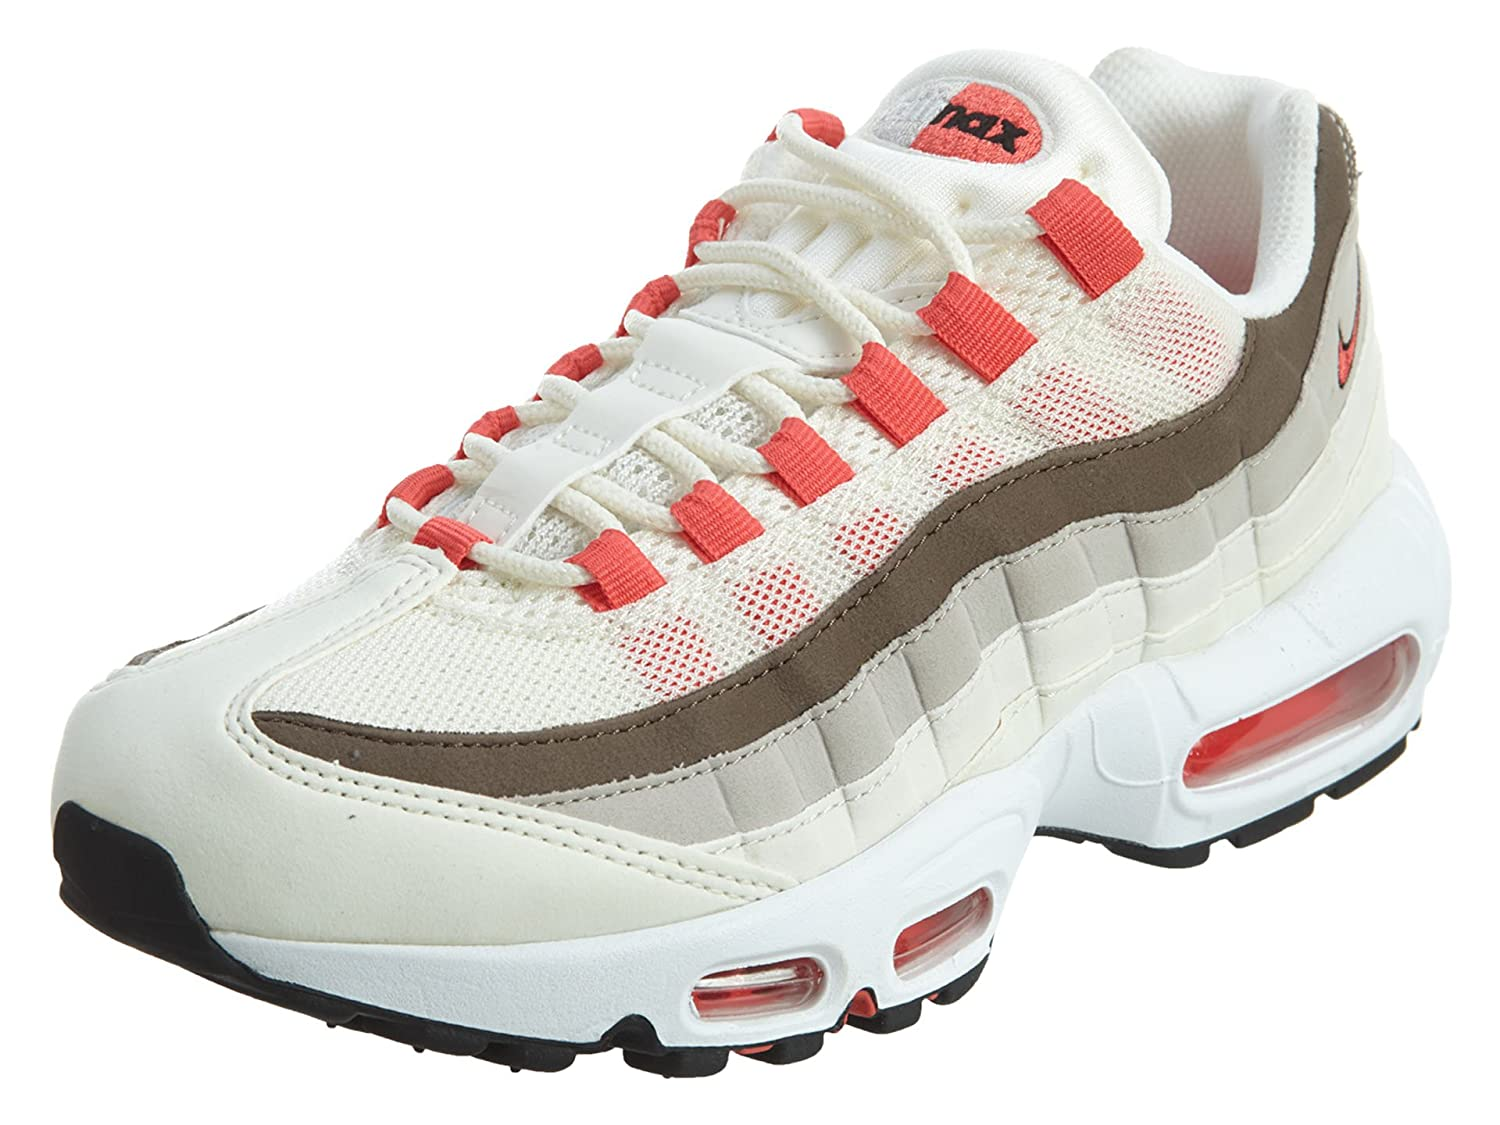 Nike Air Max 95 Womens Sail Ember Glow-phantom 11 B(M) US  Amazon.in  Shoes    Handbags 19dce537b